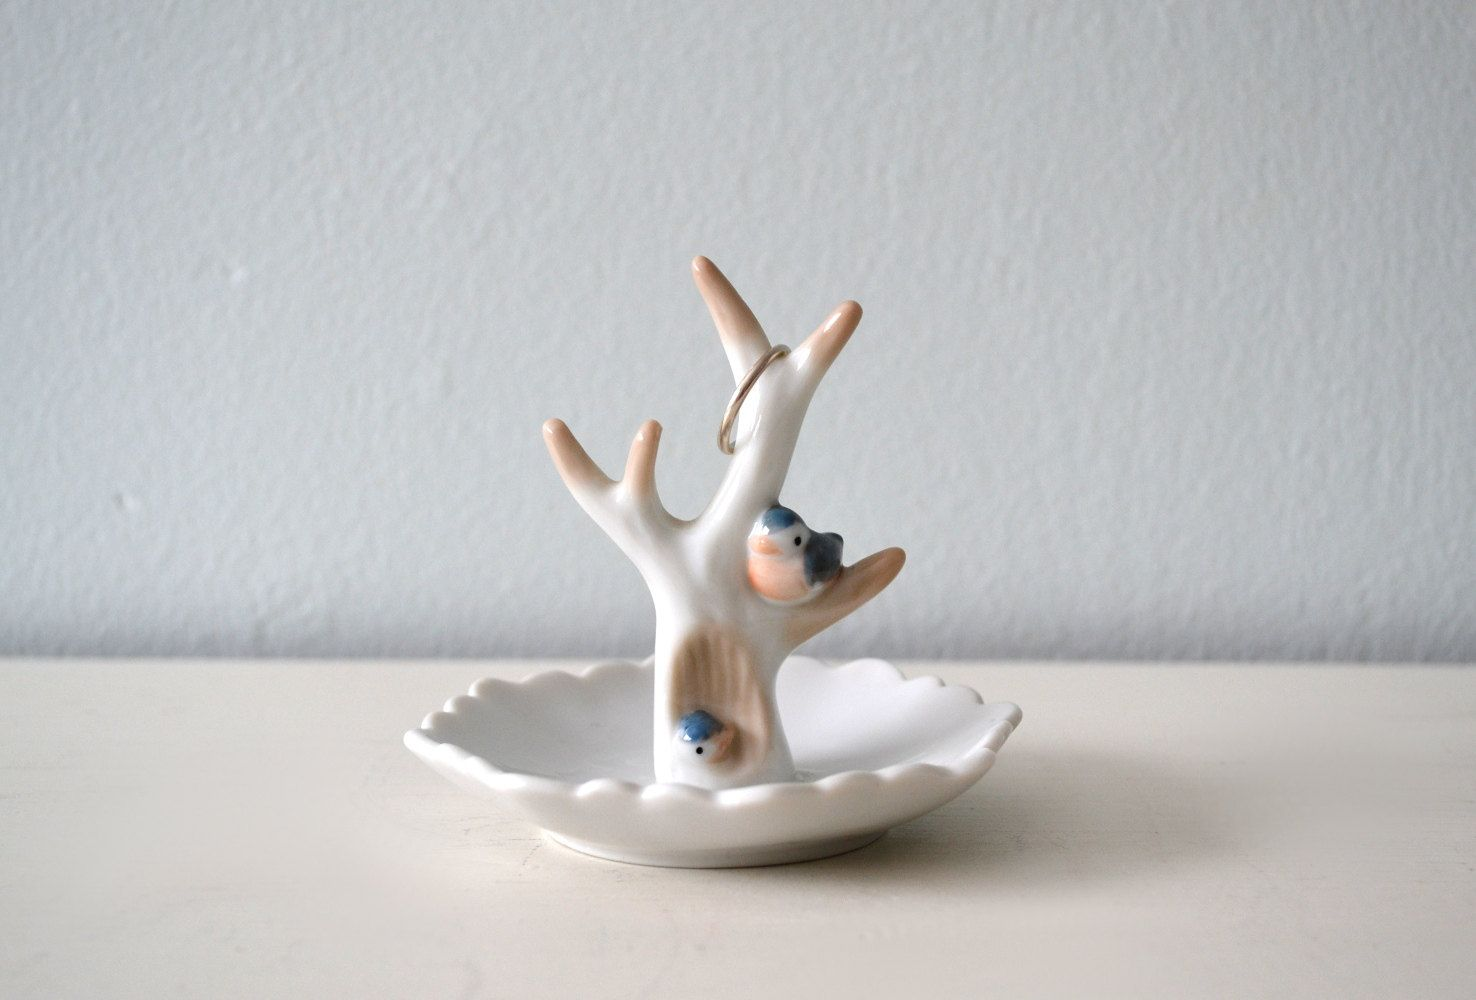 Vintage Ring Holder, Jewelry Dish, Ceramic Birds on Tree Branches, Woodland, Takahashi, Made in Japan. $13.00, via Etsy.